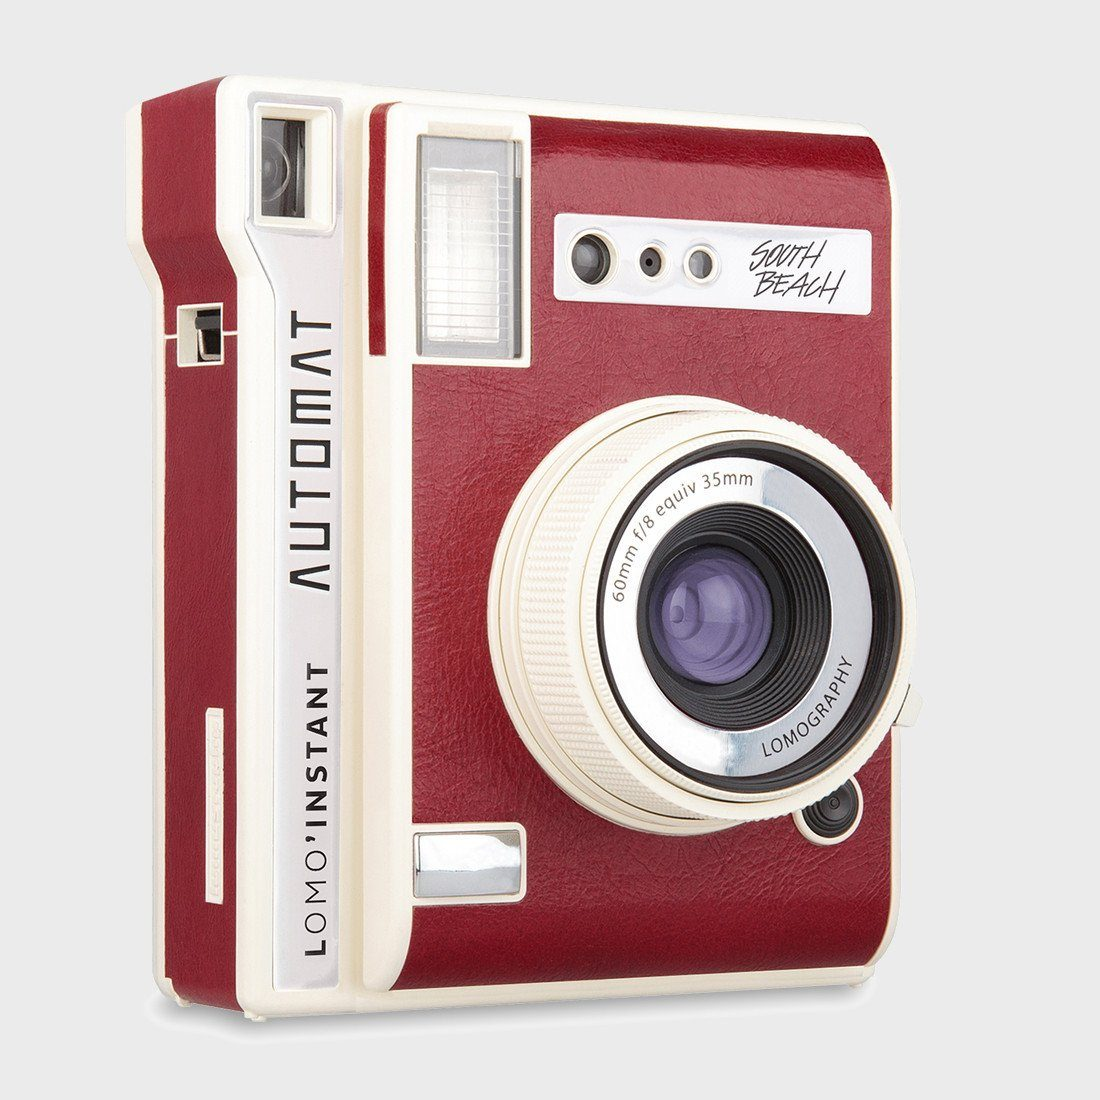 Lomography Lomo'Instant Automat South Beach